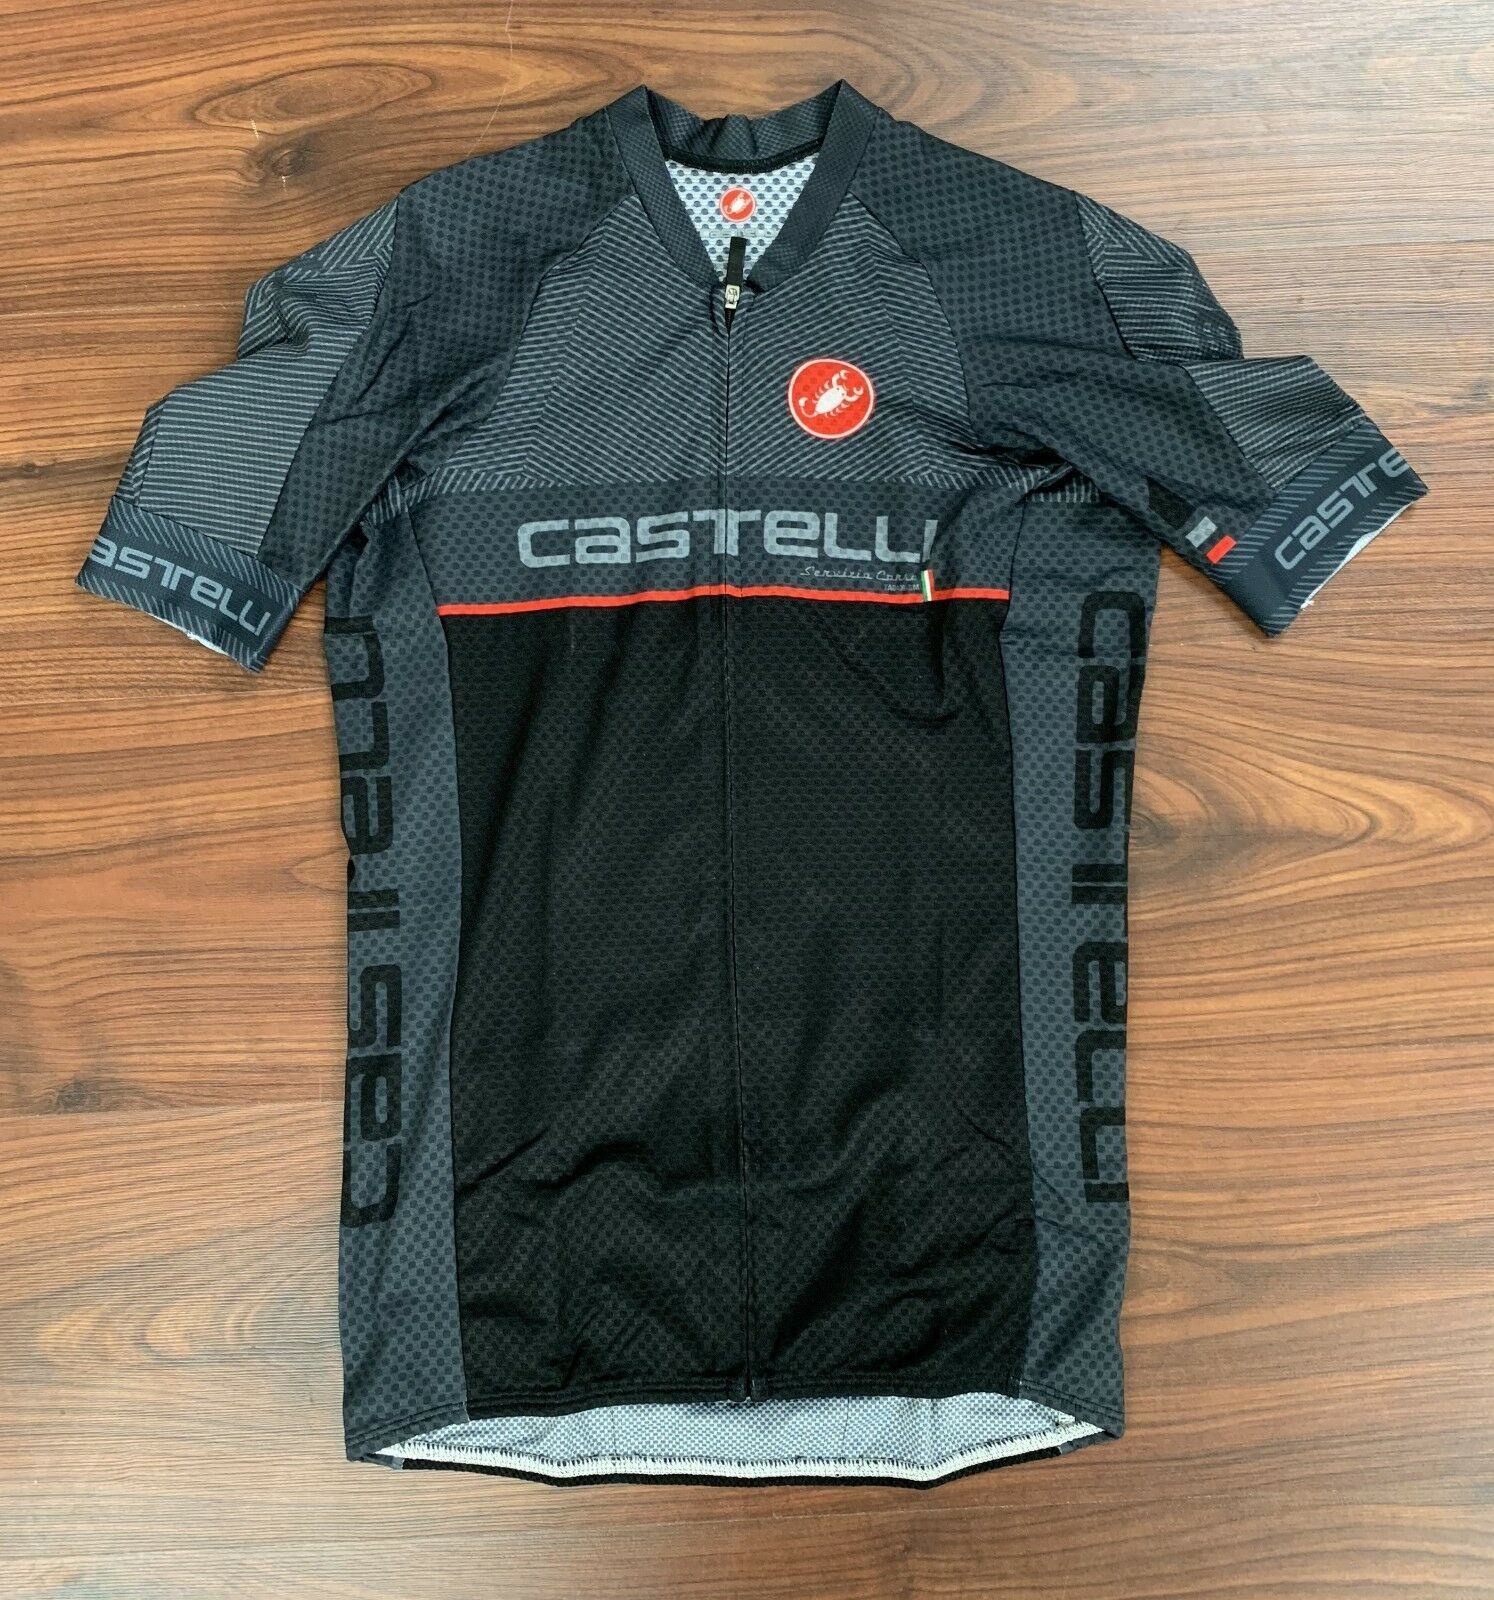 Castelli Climbers 2.0 Men's XXS Jersey New with no tags